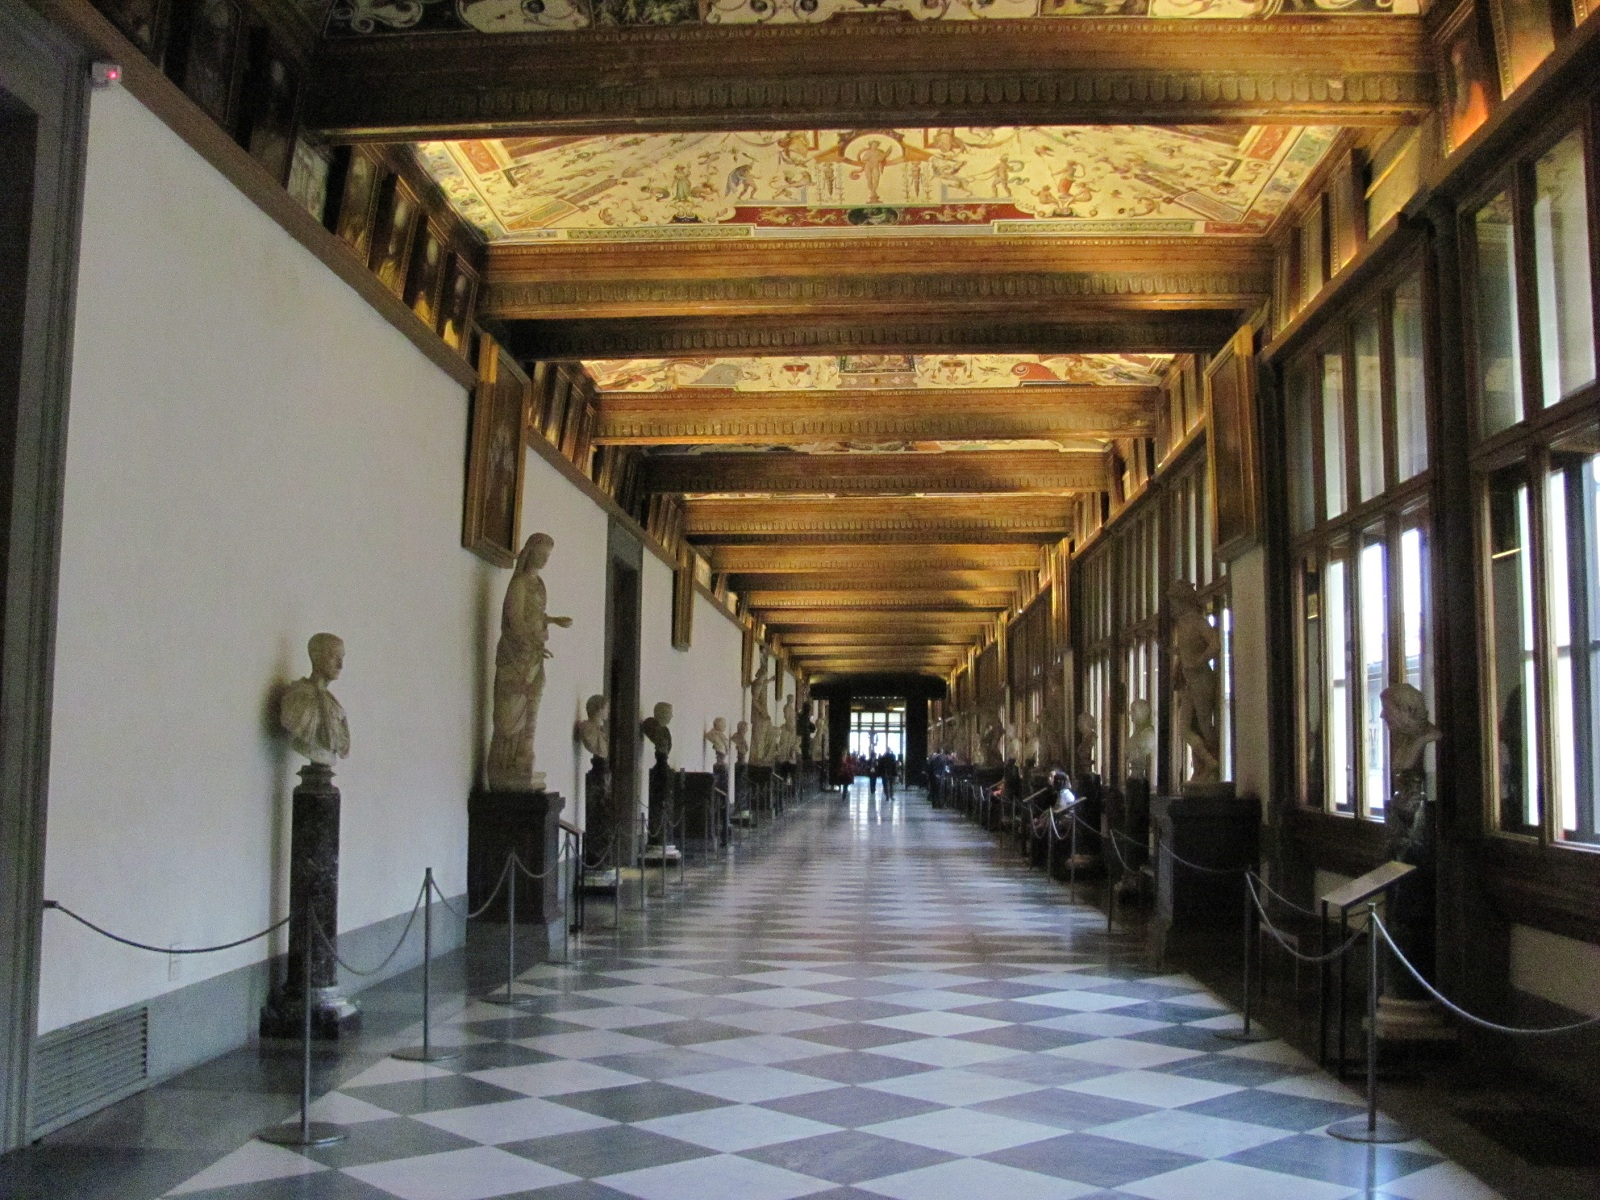 Beautiful sights Florence, Italy, Uffizi Gallery interior view